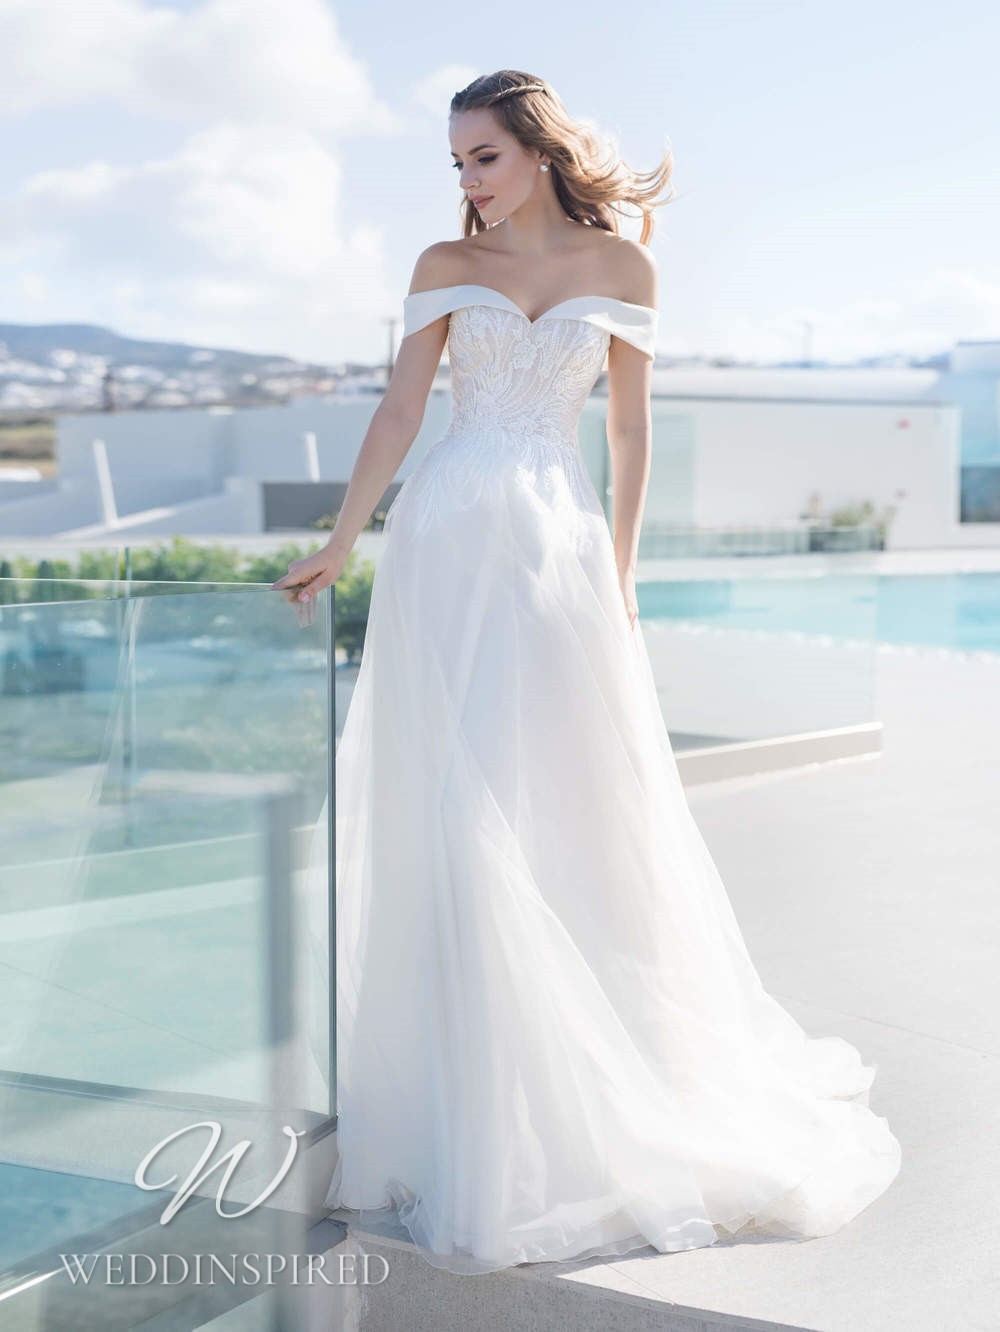 A Blunny 2021 off the shoulder tulle A-line wedding dress